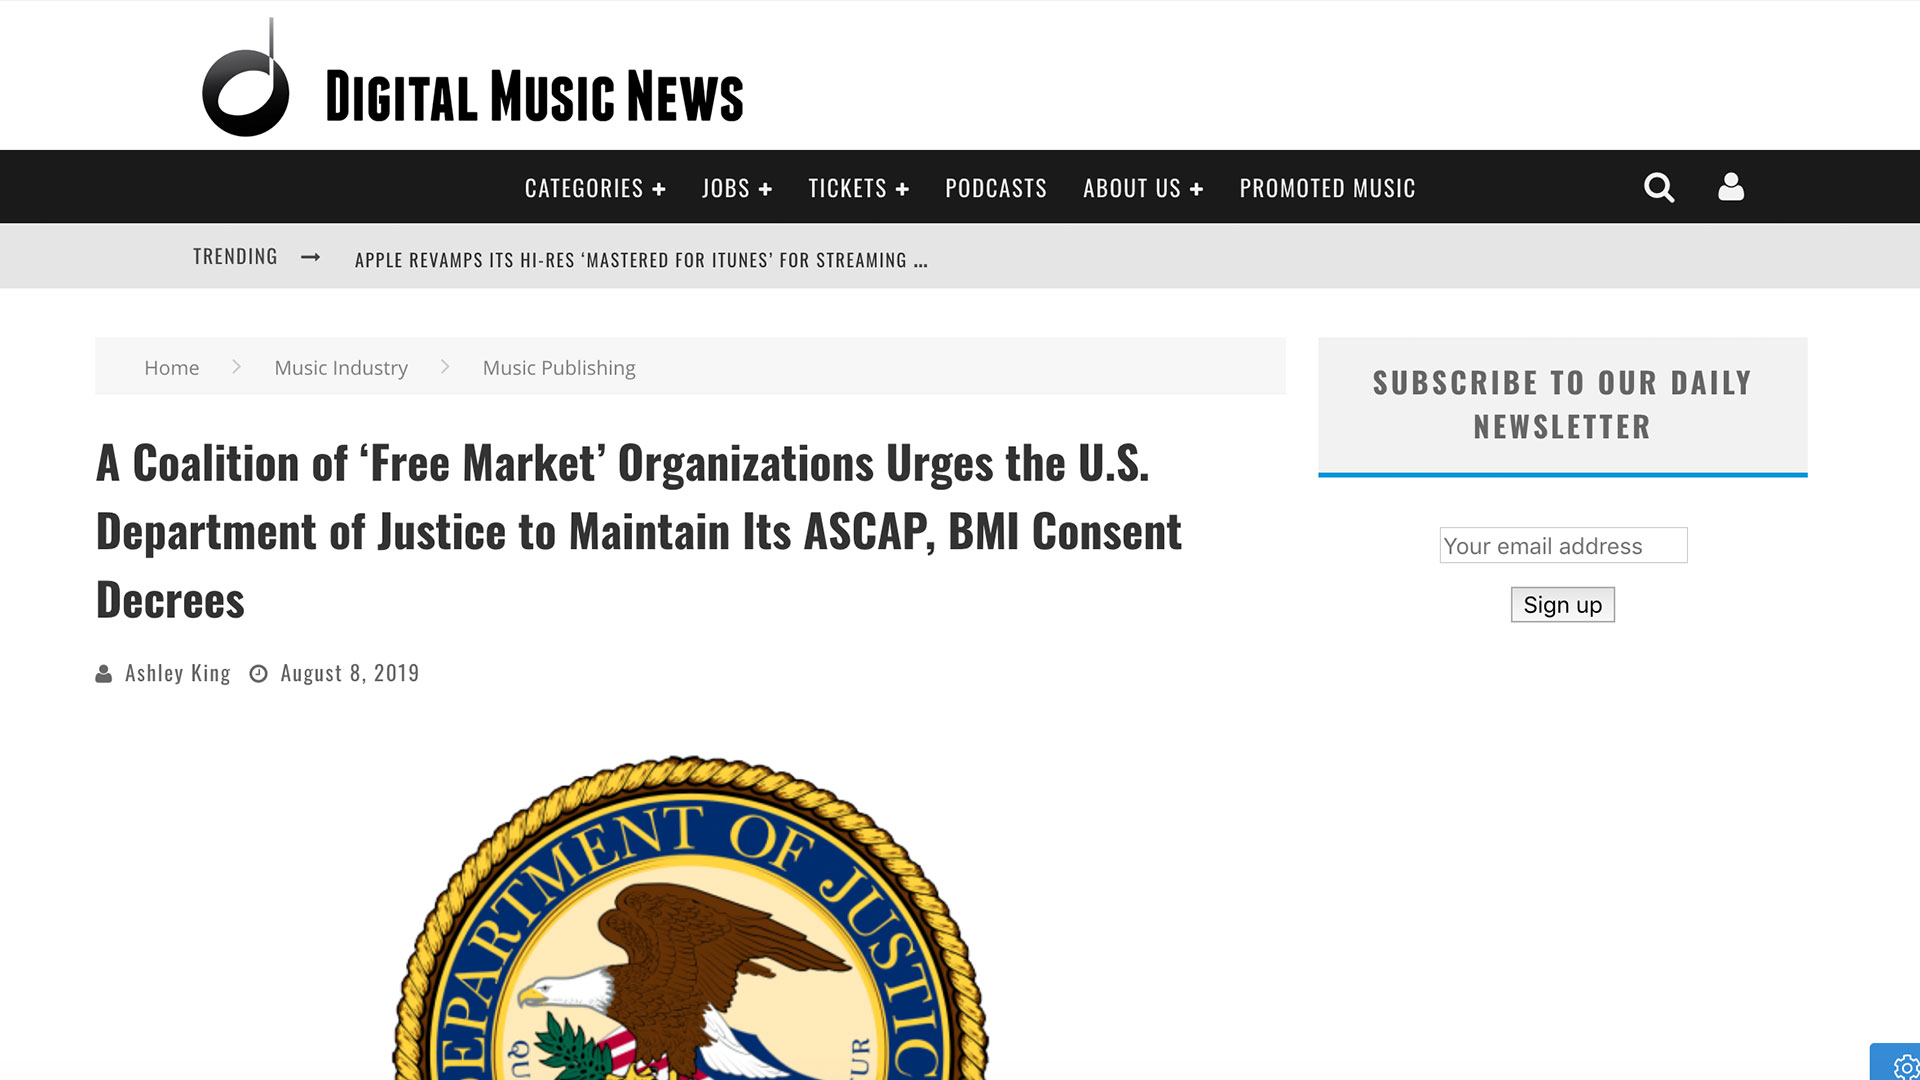 Fairness Rocks News A Coalition of 'Free Market' Organizations Urges the U.S. Department of Justice to Maintain Its ASCAP, BMI Consent Decrees